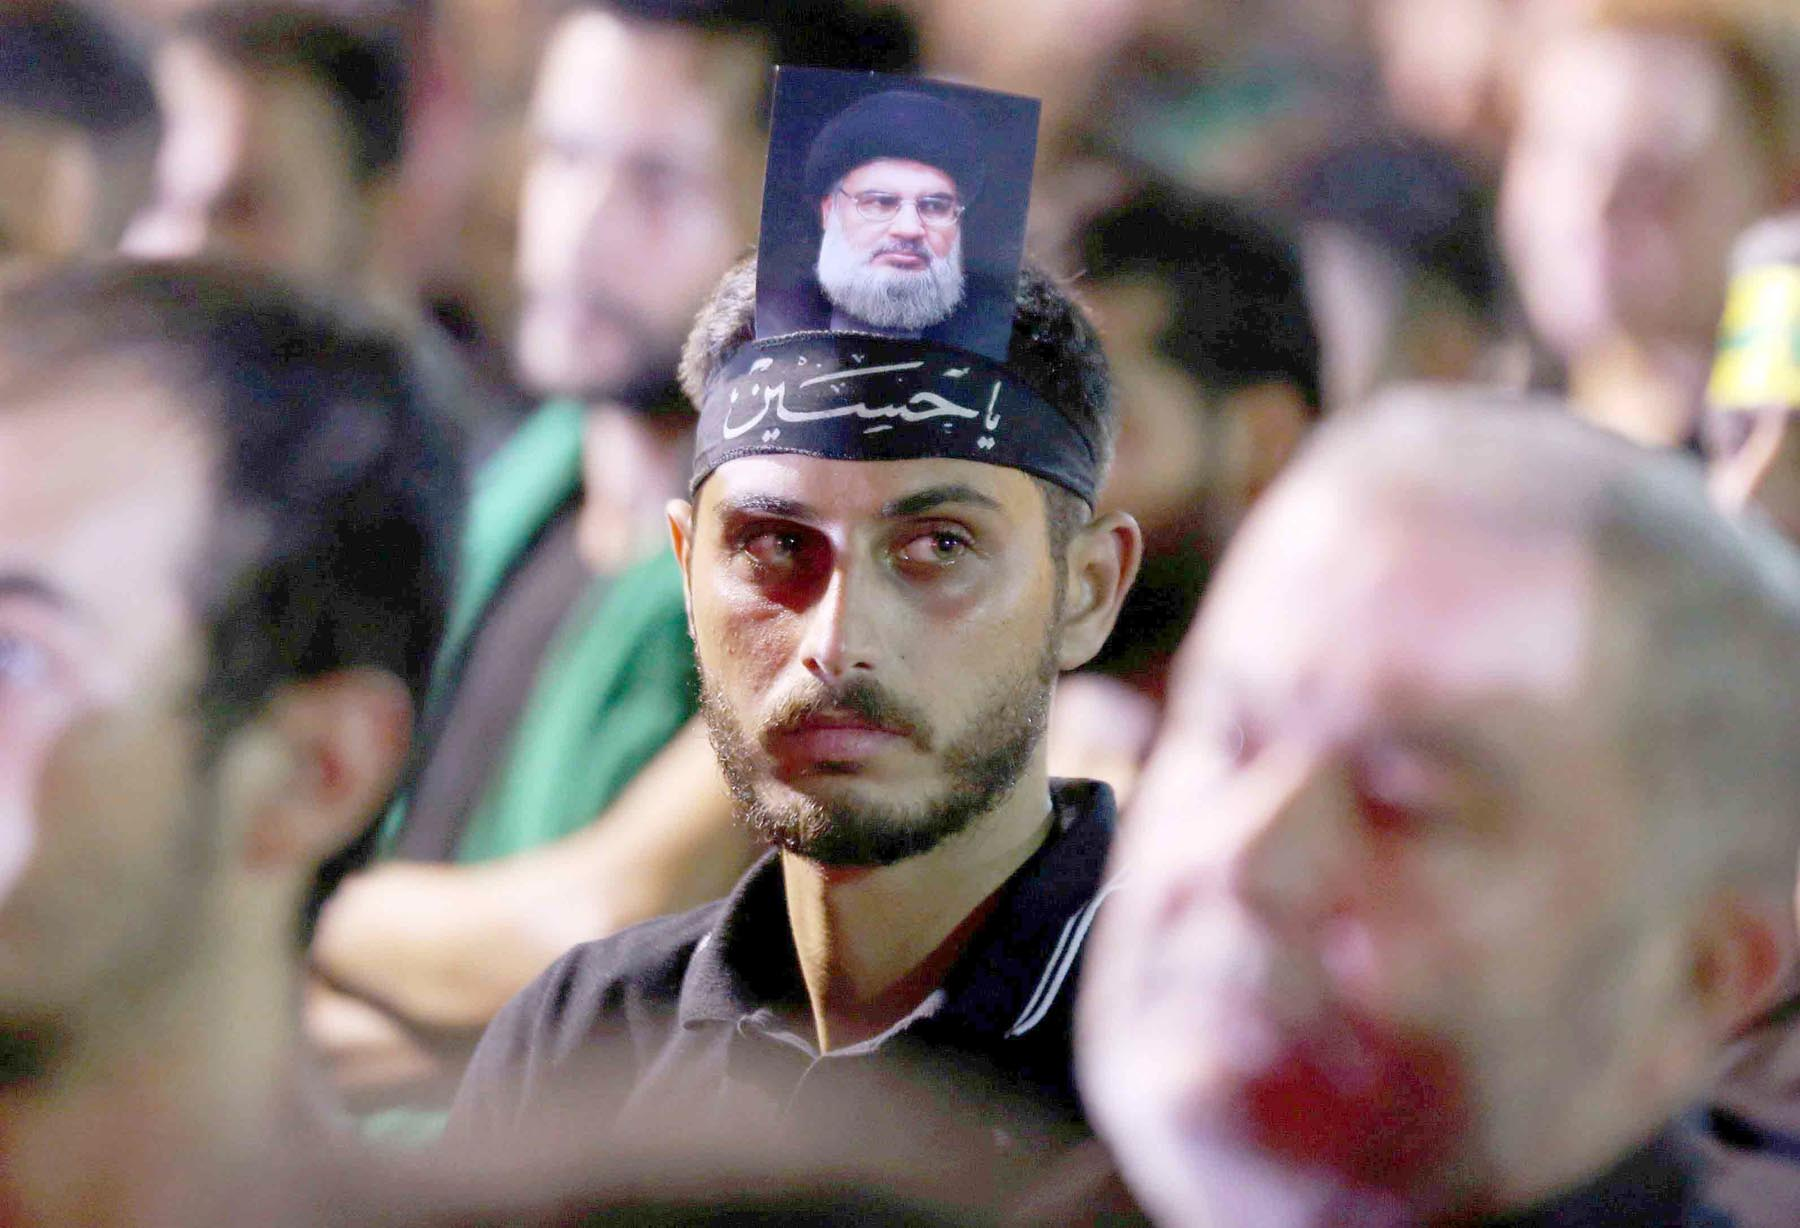 A Hezbollah supporter attends a rally in Beirut. (Reuters)